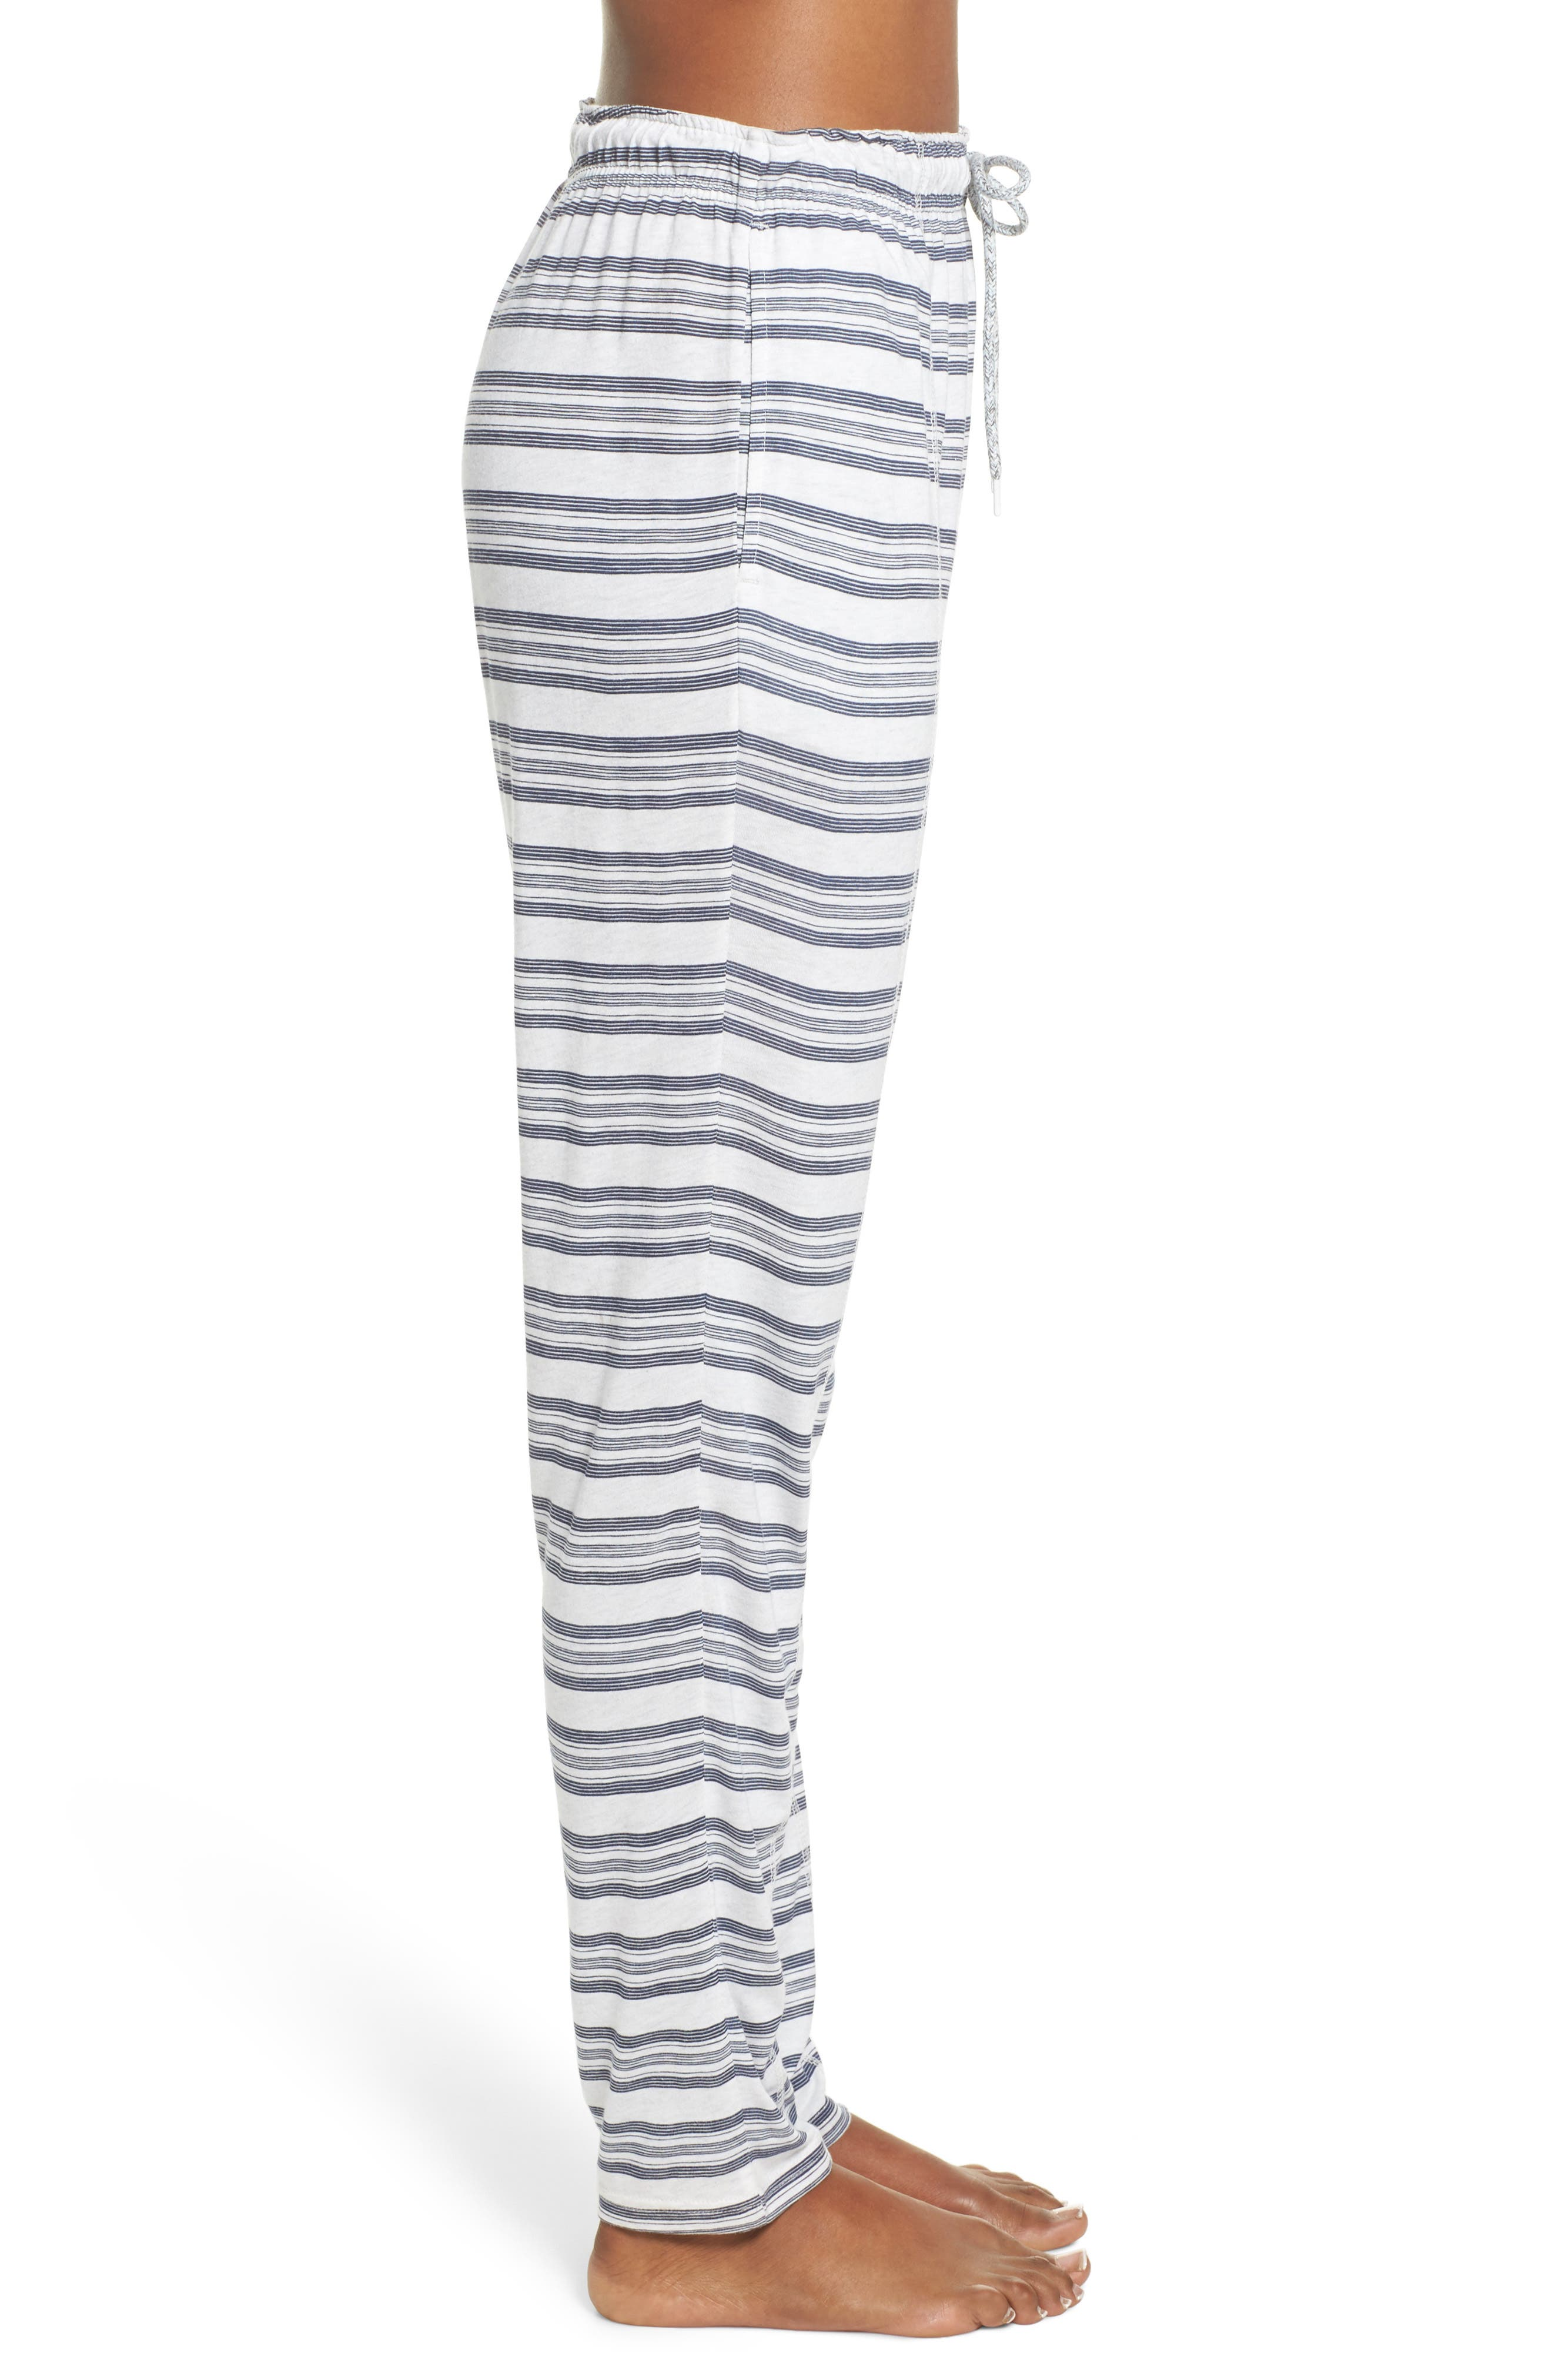 Alice Lounge Pants,                             Alternate thumbnail 2, color,                             Snow Marle Stripe